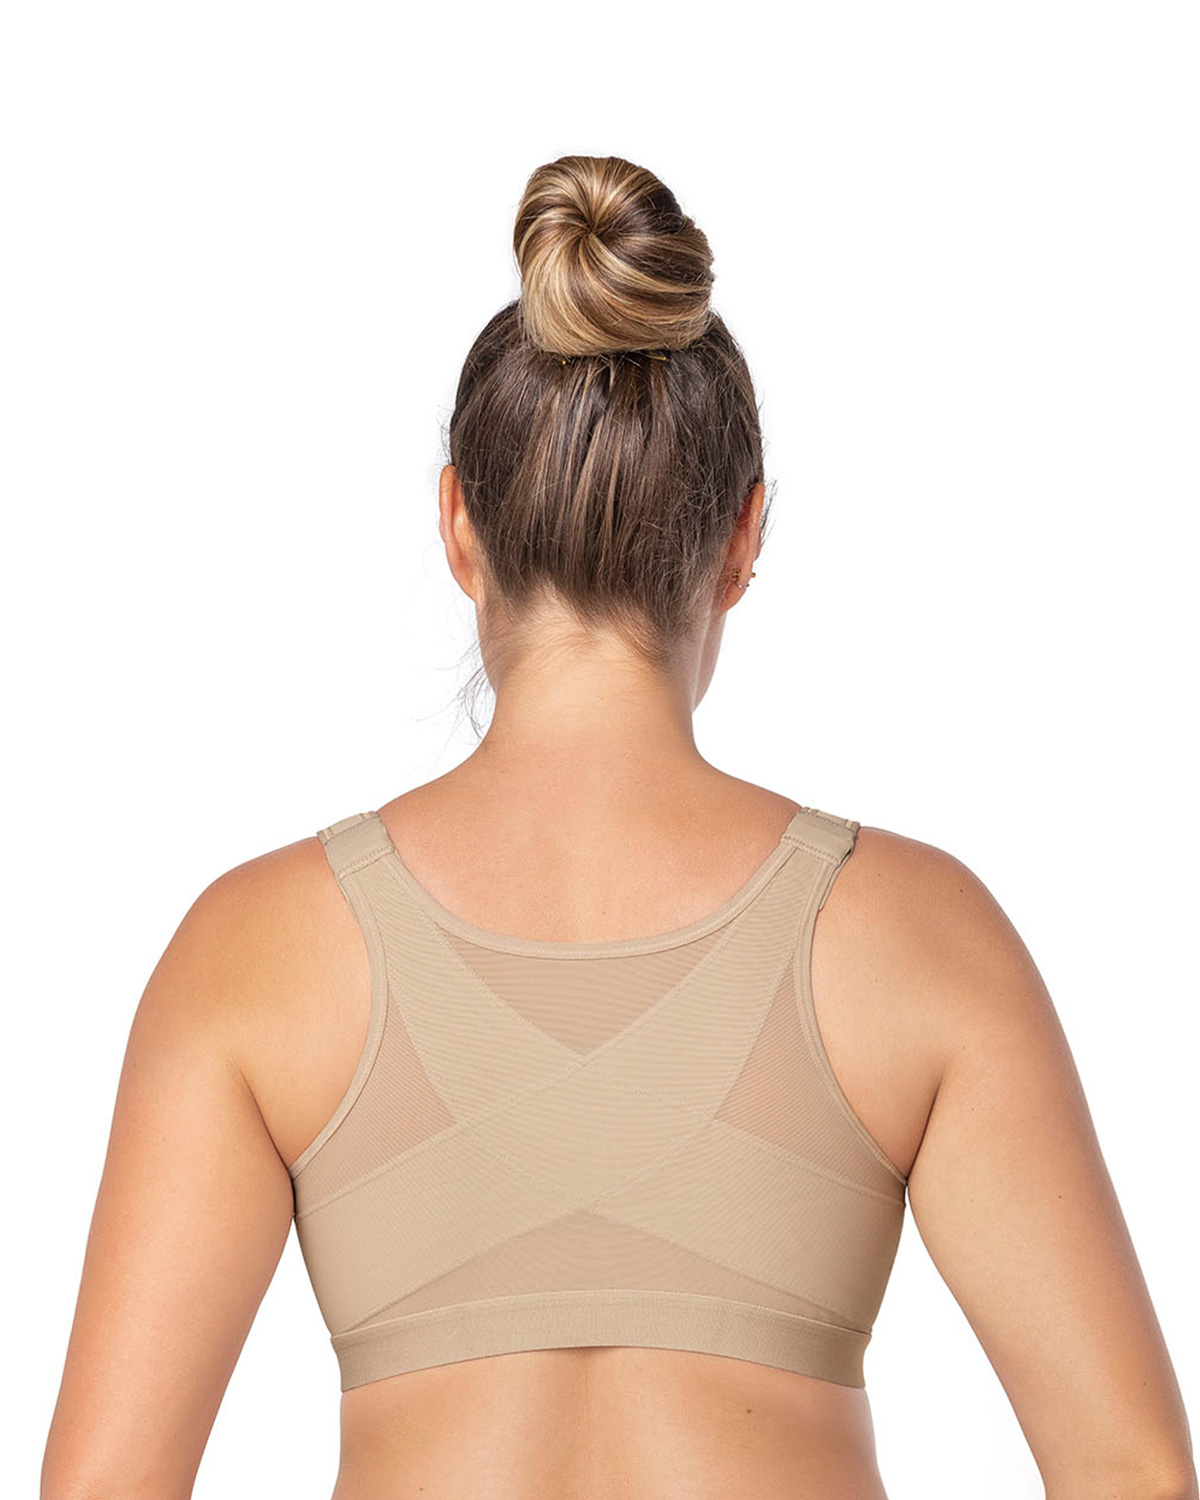 a268afb09a Leonisa Posture Corrector Wireless Back Support Bra 32 C Nude 32c